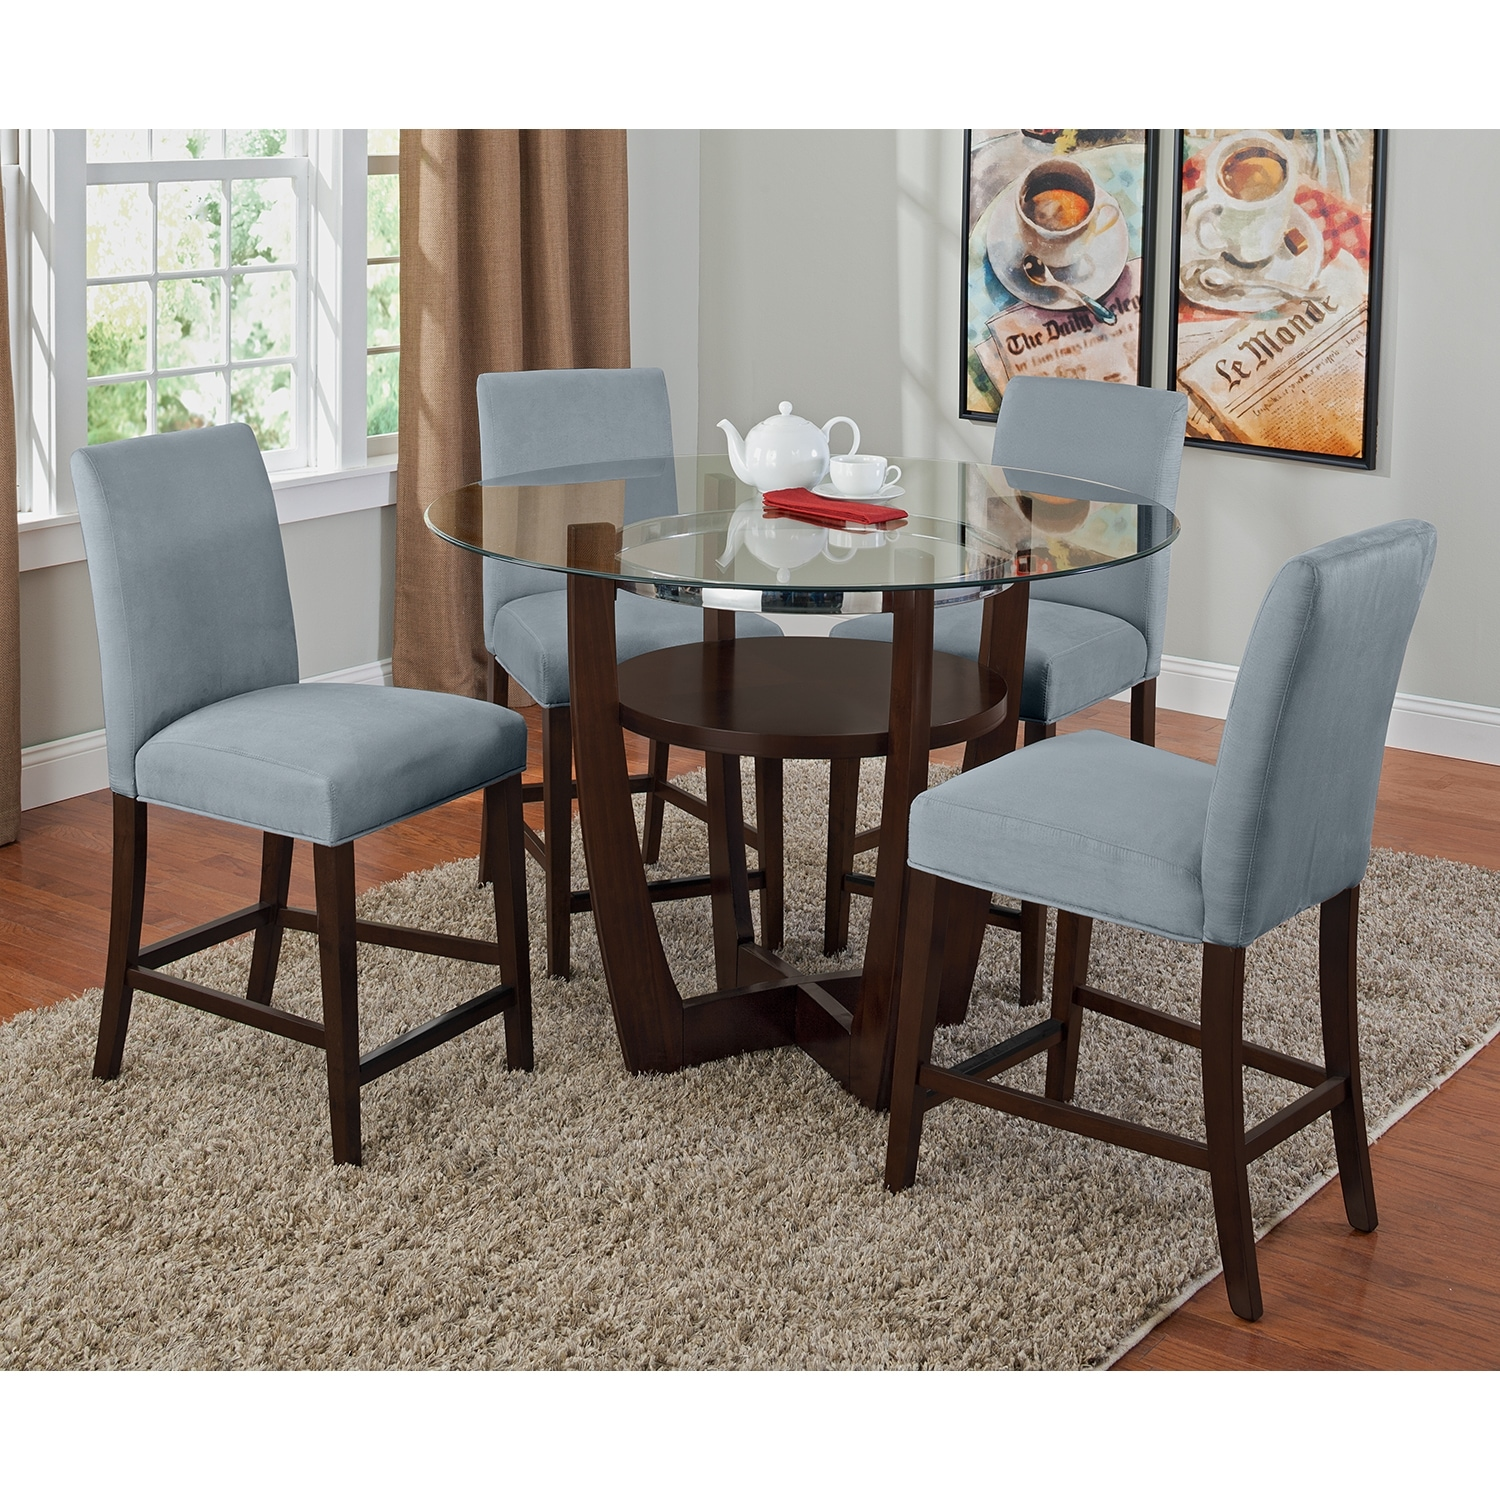 Newcastle Counter Height Dining Table 2 Chairs 2 Stools: Alcove Counter-Height Stool - Aqua